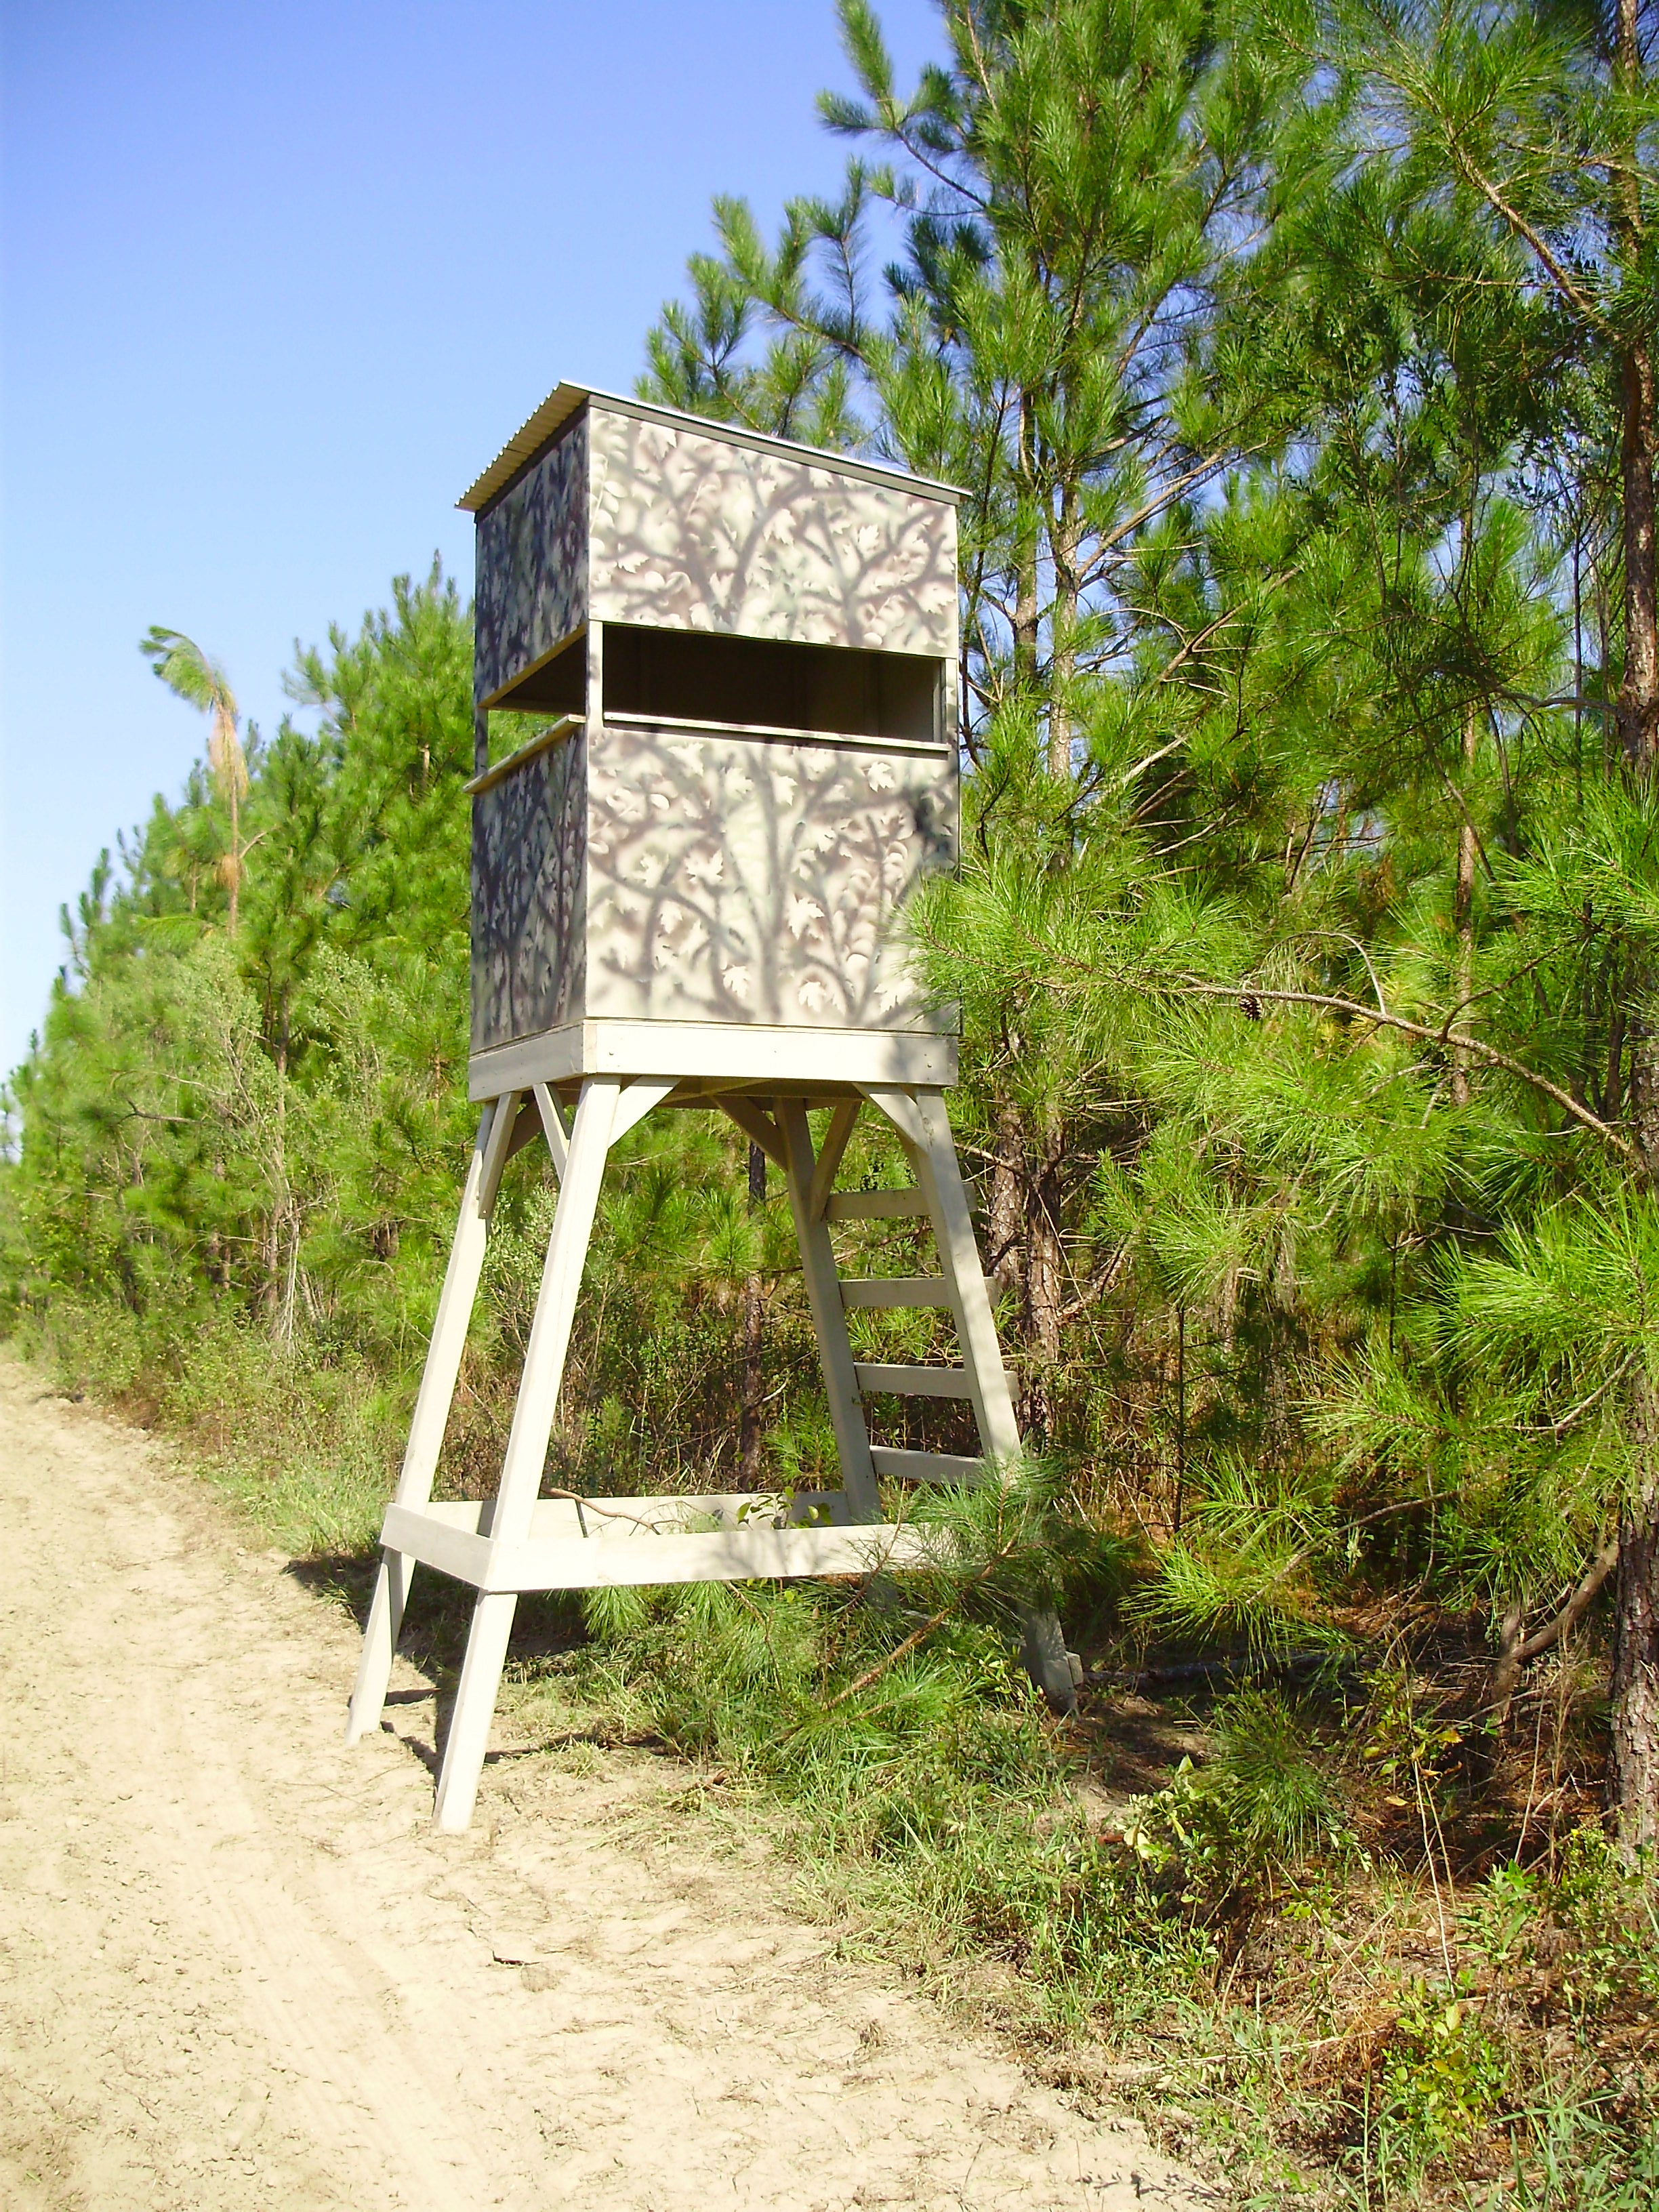 DIY Wood Deer Stand Plans Wooden PDF woodworking plans 4 free ...